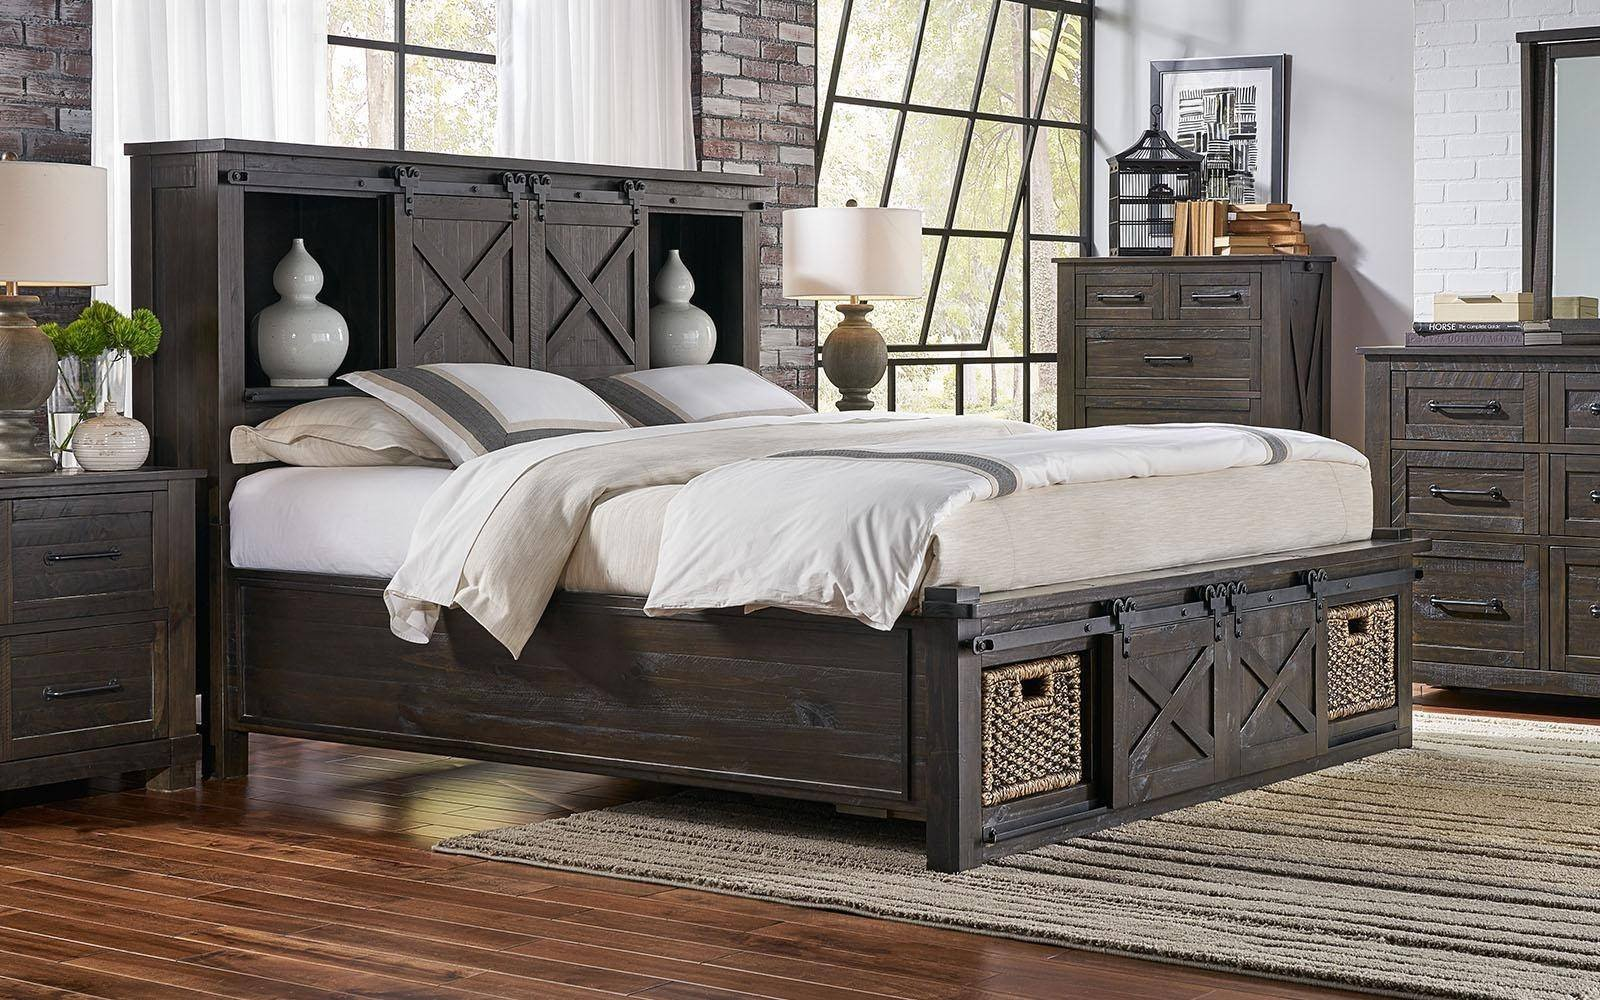 Rustic Queen Bedroom Set Awesome Rustic Queen Rotating Storage Bedroom Set 5pcs Suvcl5032 A